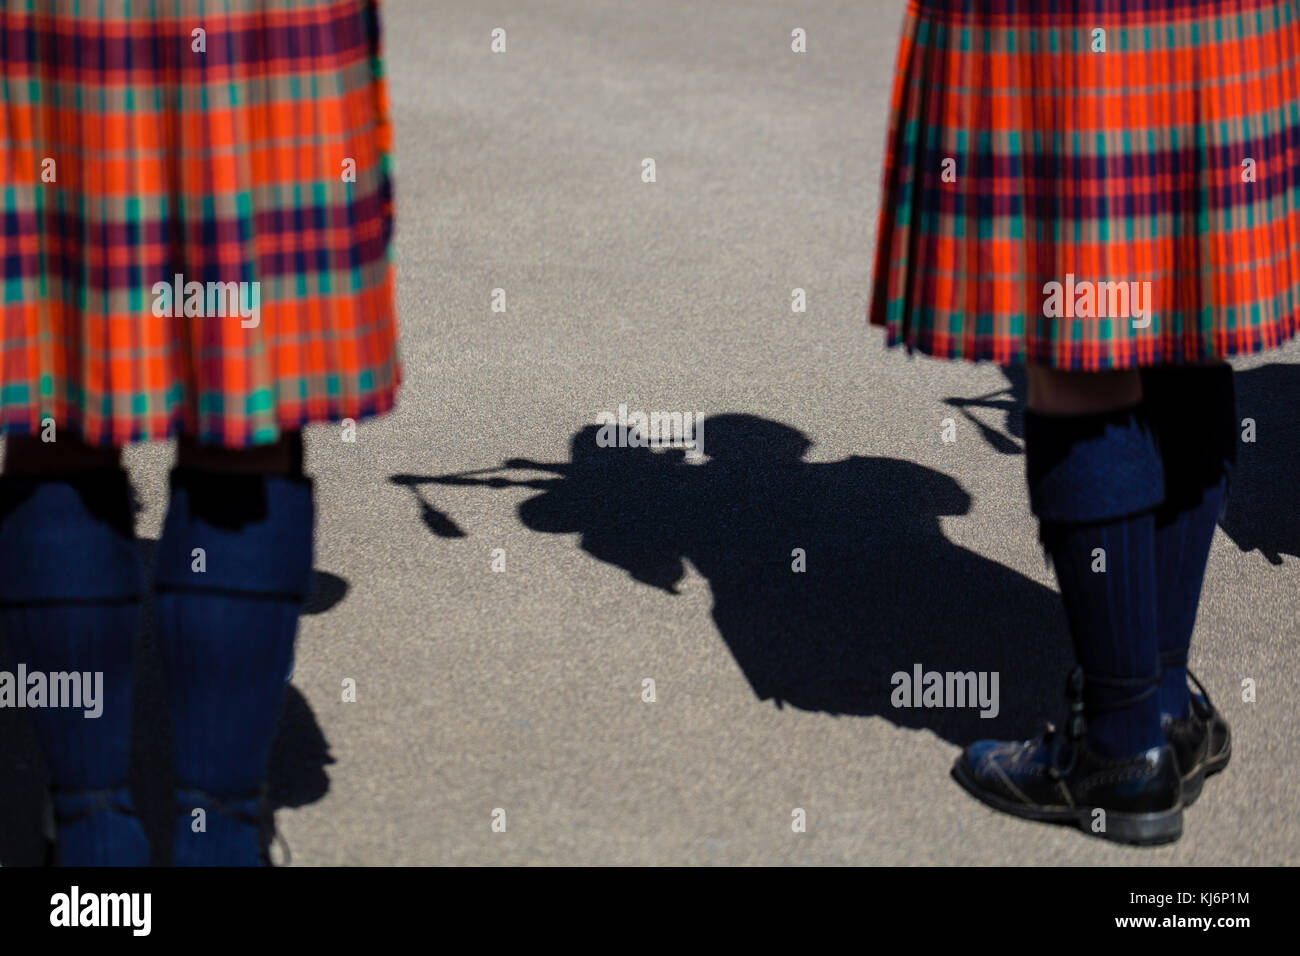 Shadow of a man wearing a kilt and playing bagpipes - Stock Image